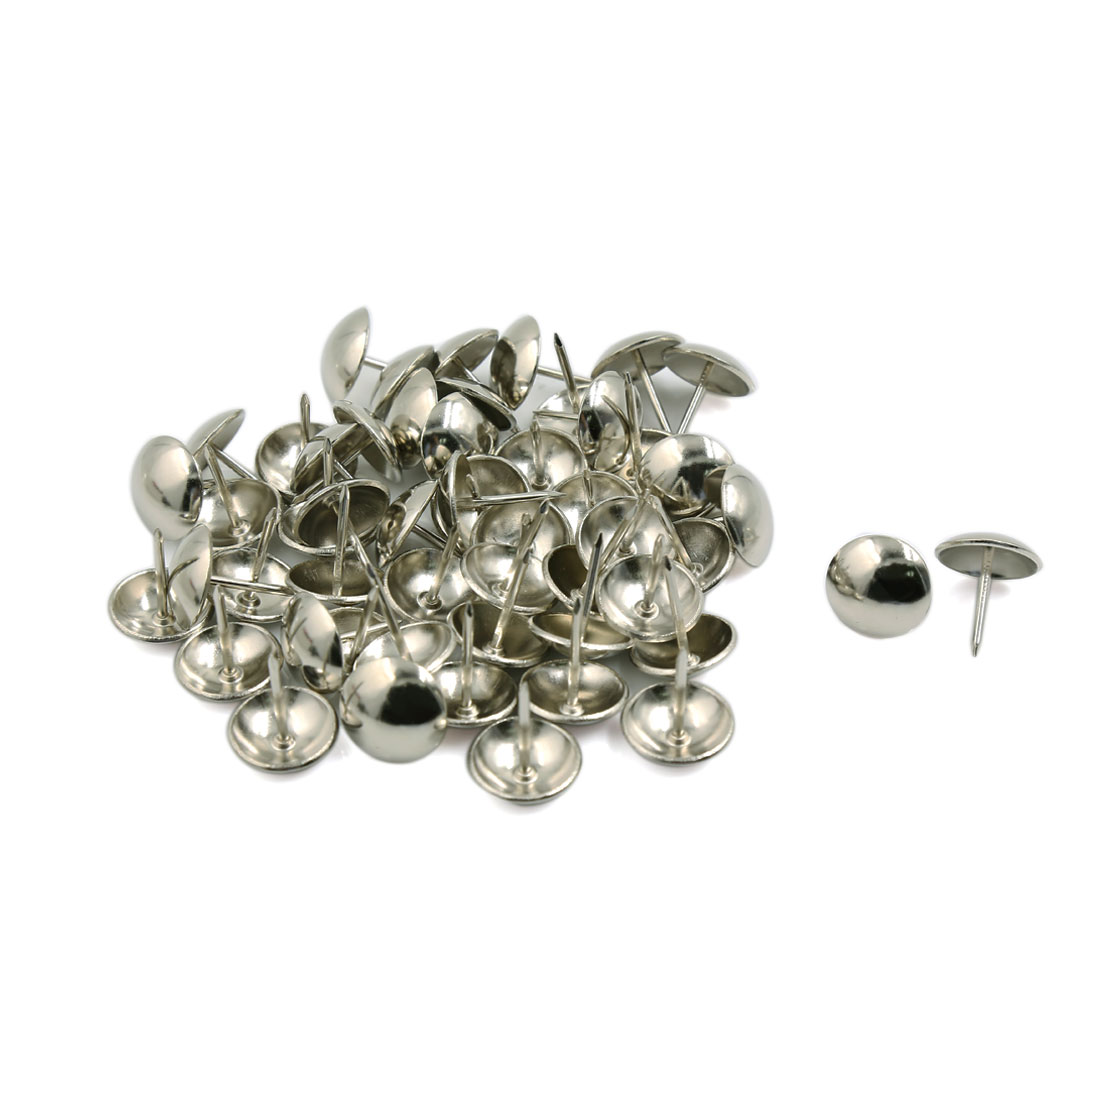 Unique Bargains 50 Pcs Home/Office Steel Board Map Push Pins Thumbtacks w Steel Point Silver Tone